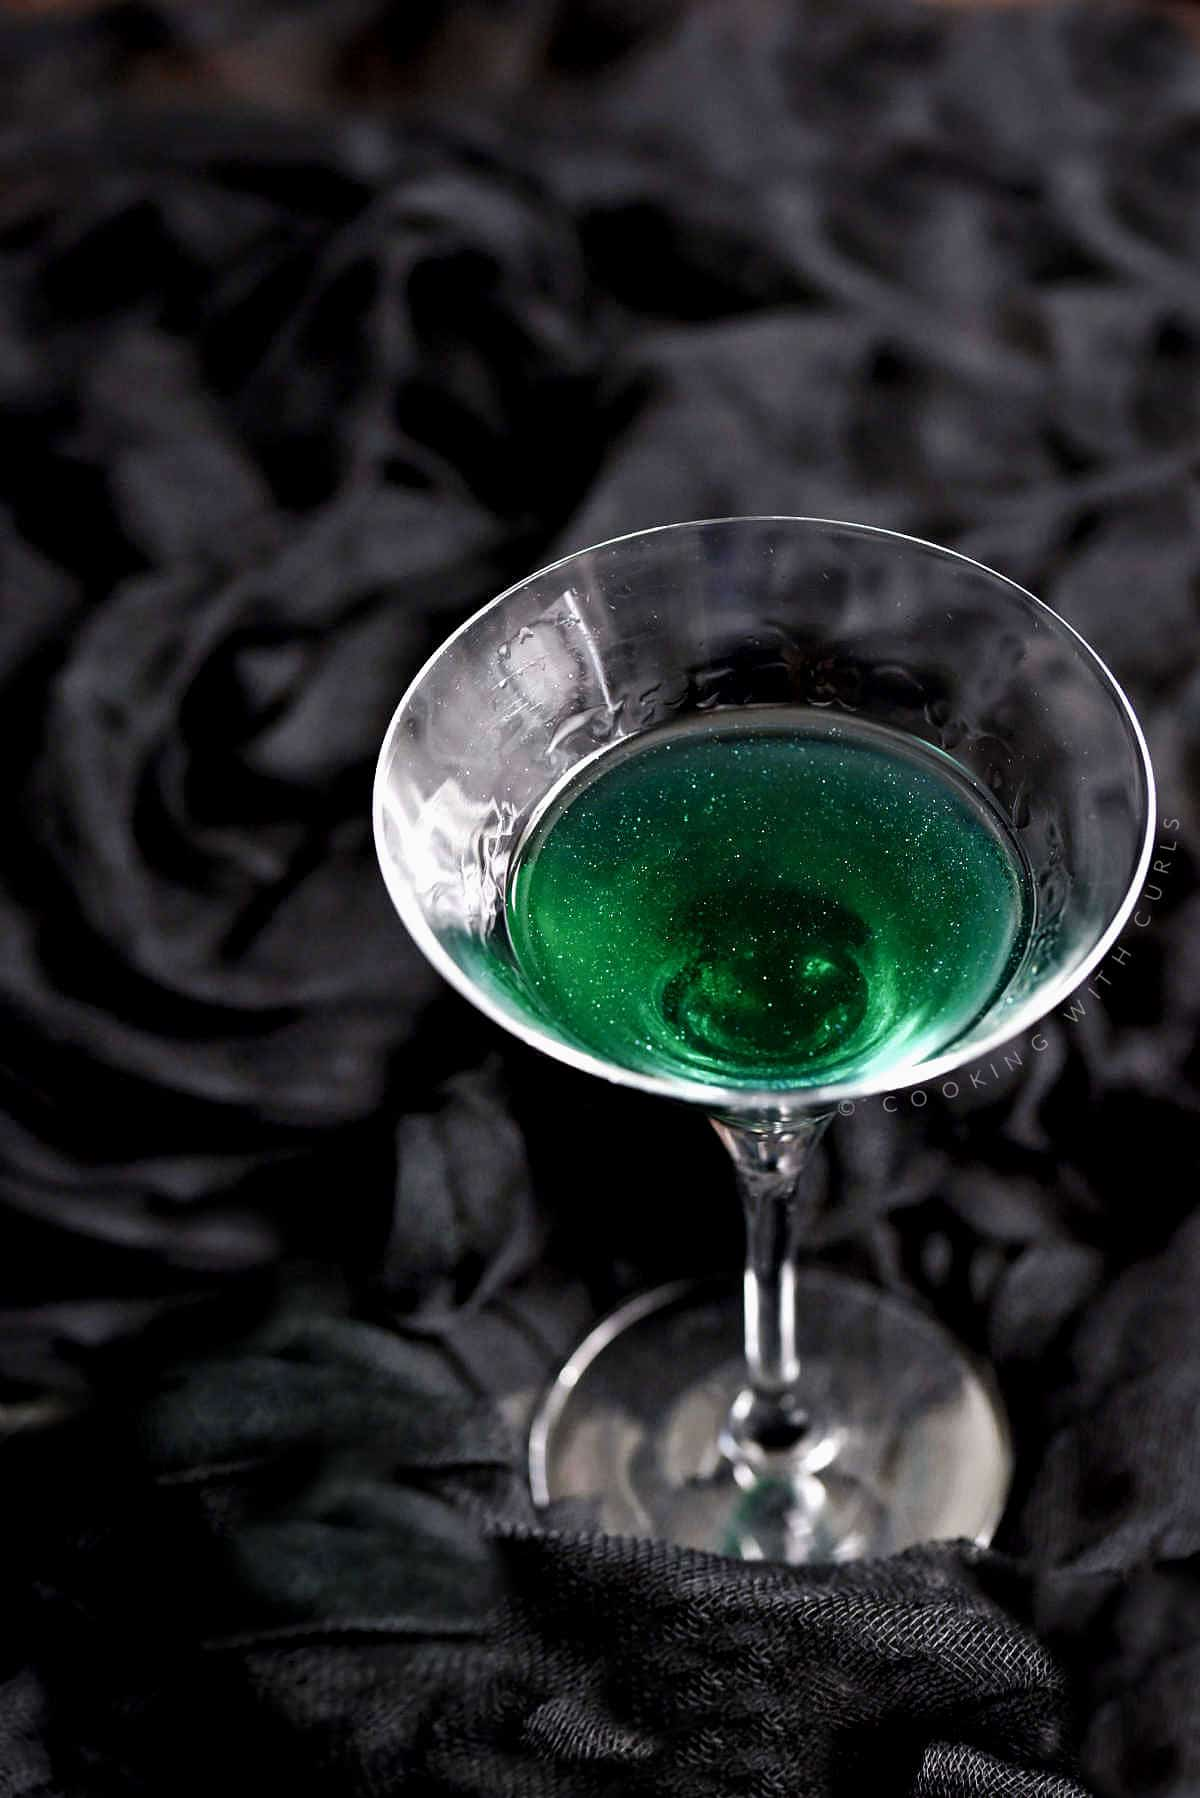 Looking into a green shimmering cocktail in a martini glass.